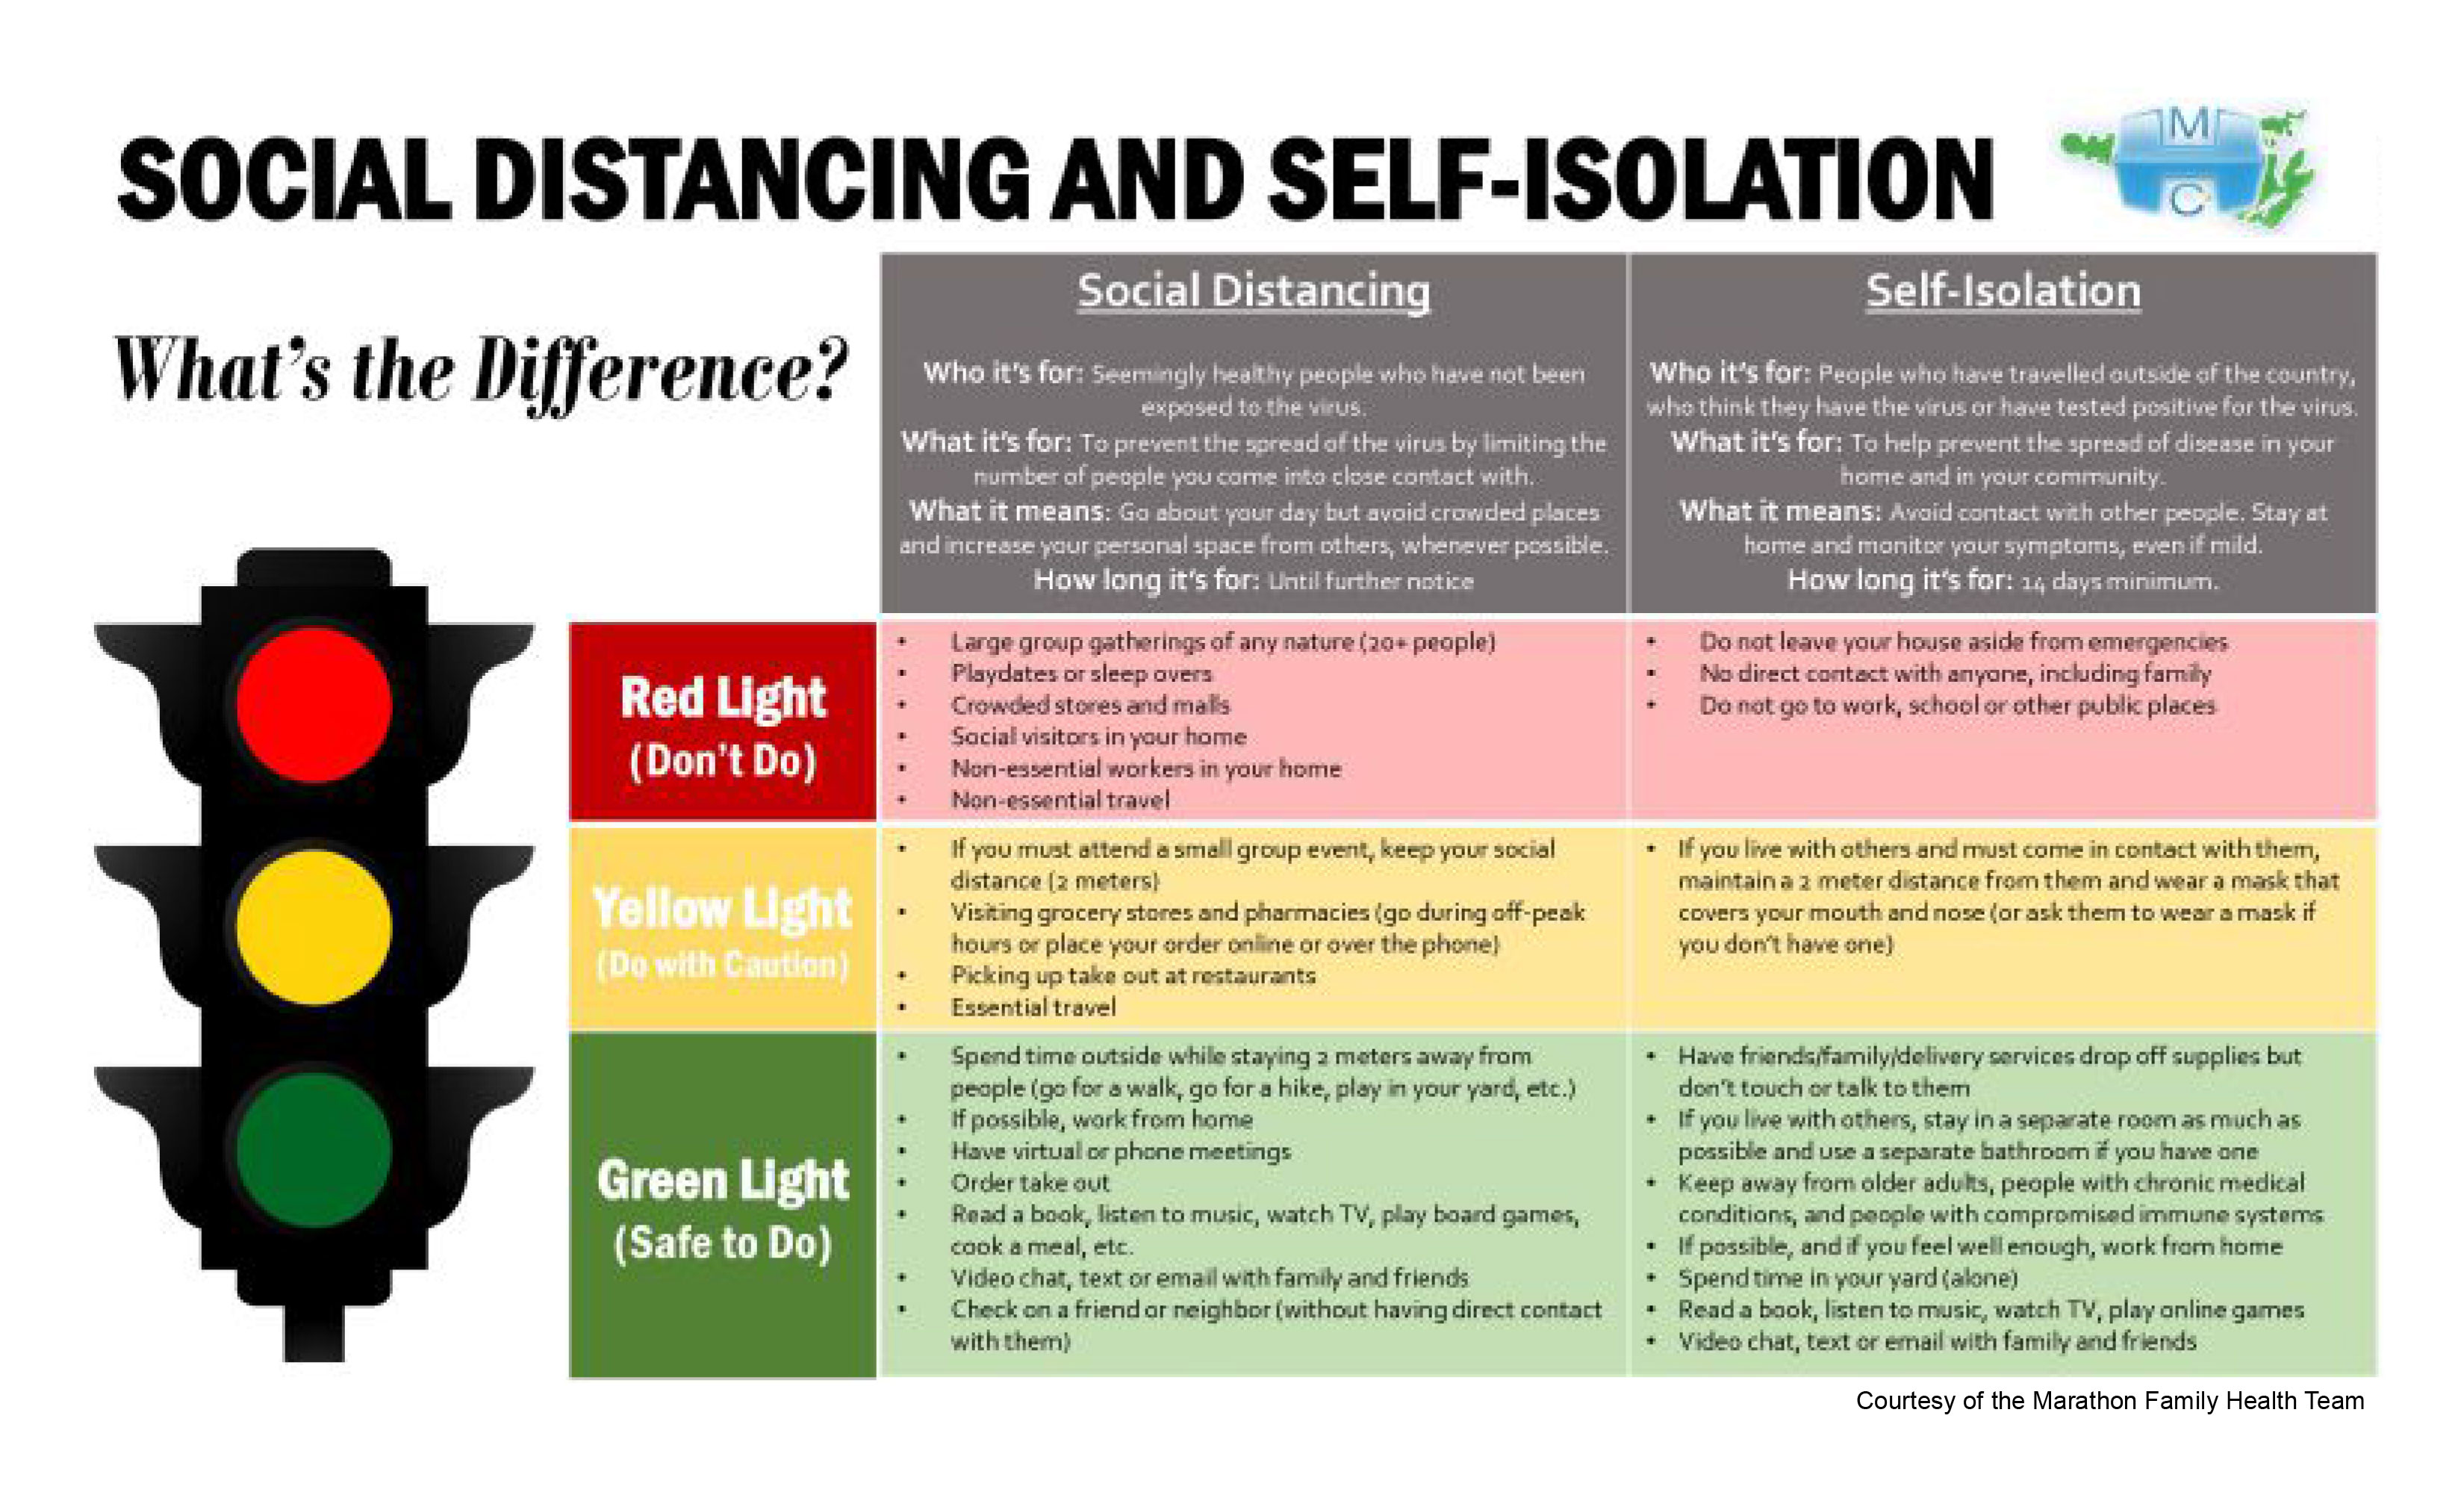 Image of Social Distancing and Self-Isolation Poster